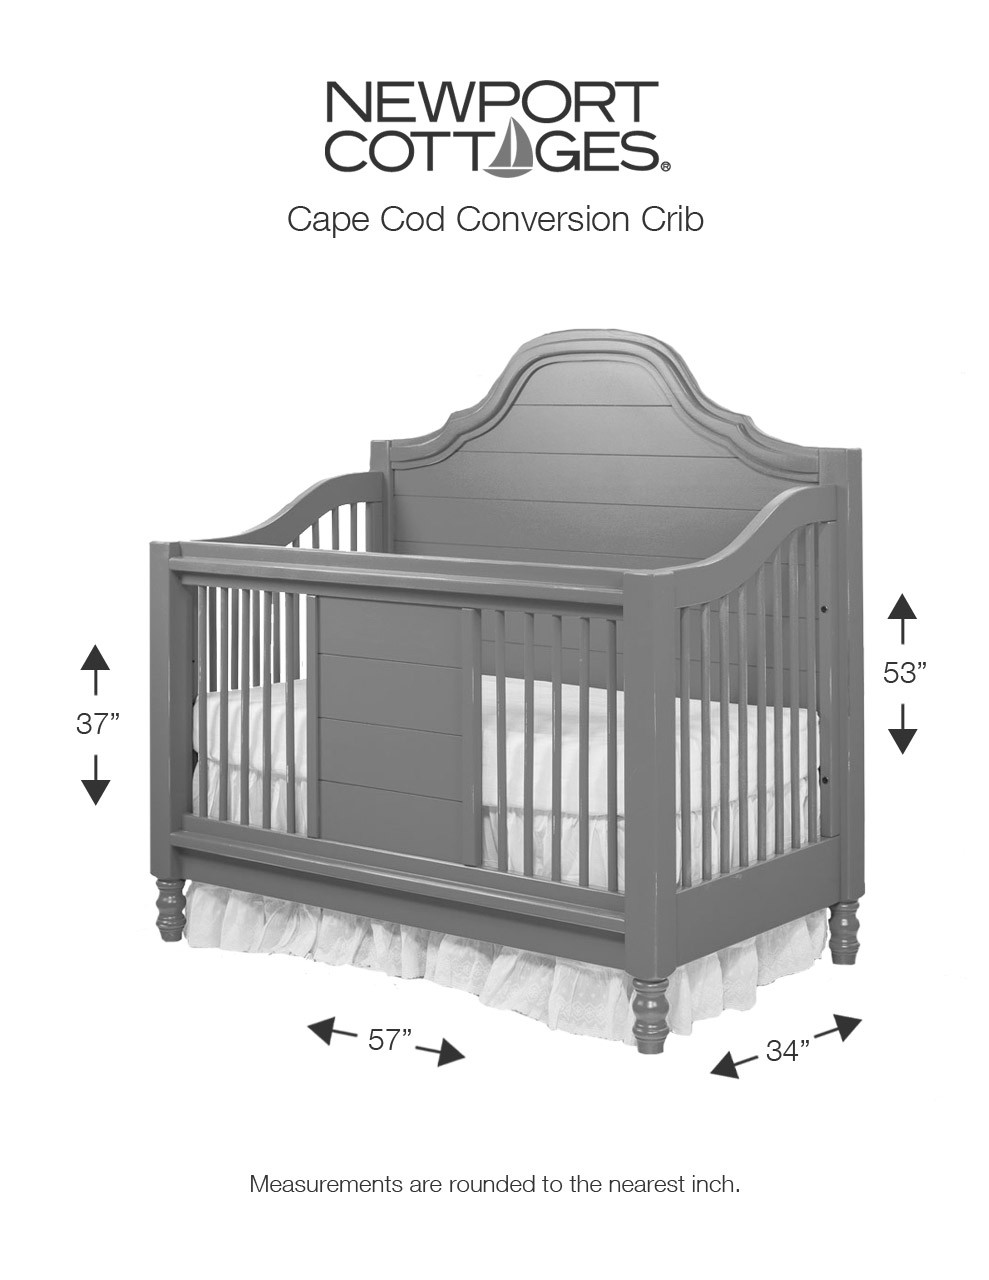 Baby Cod Newport Cottages Cape Cod Beadboard Conversion Crib Featured At